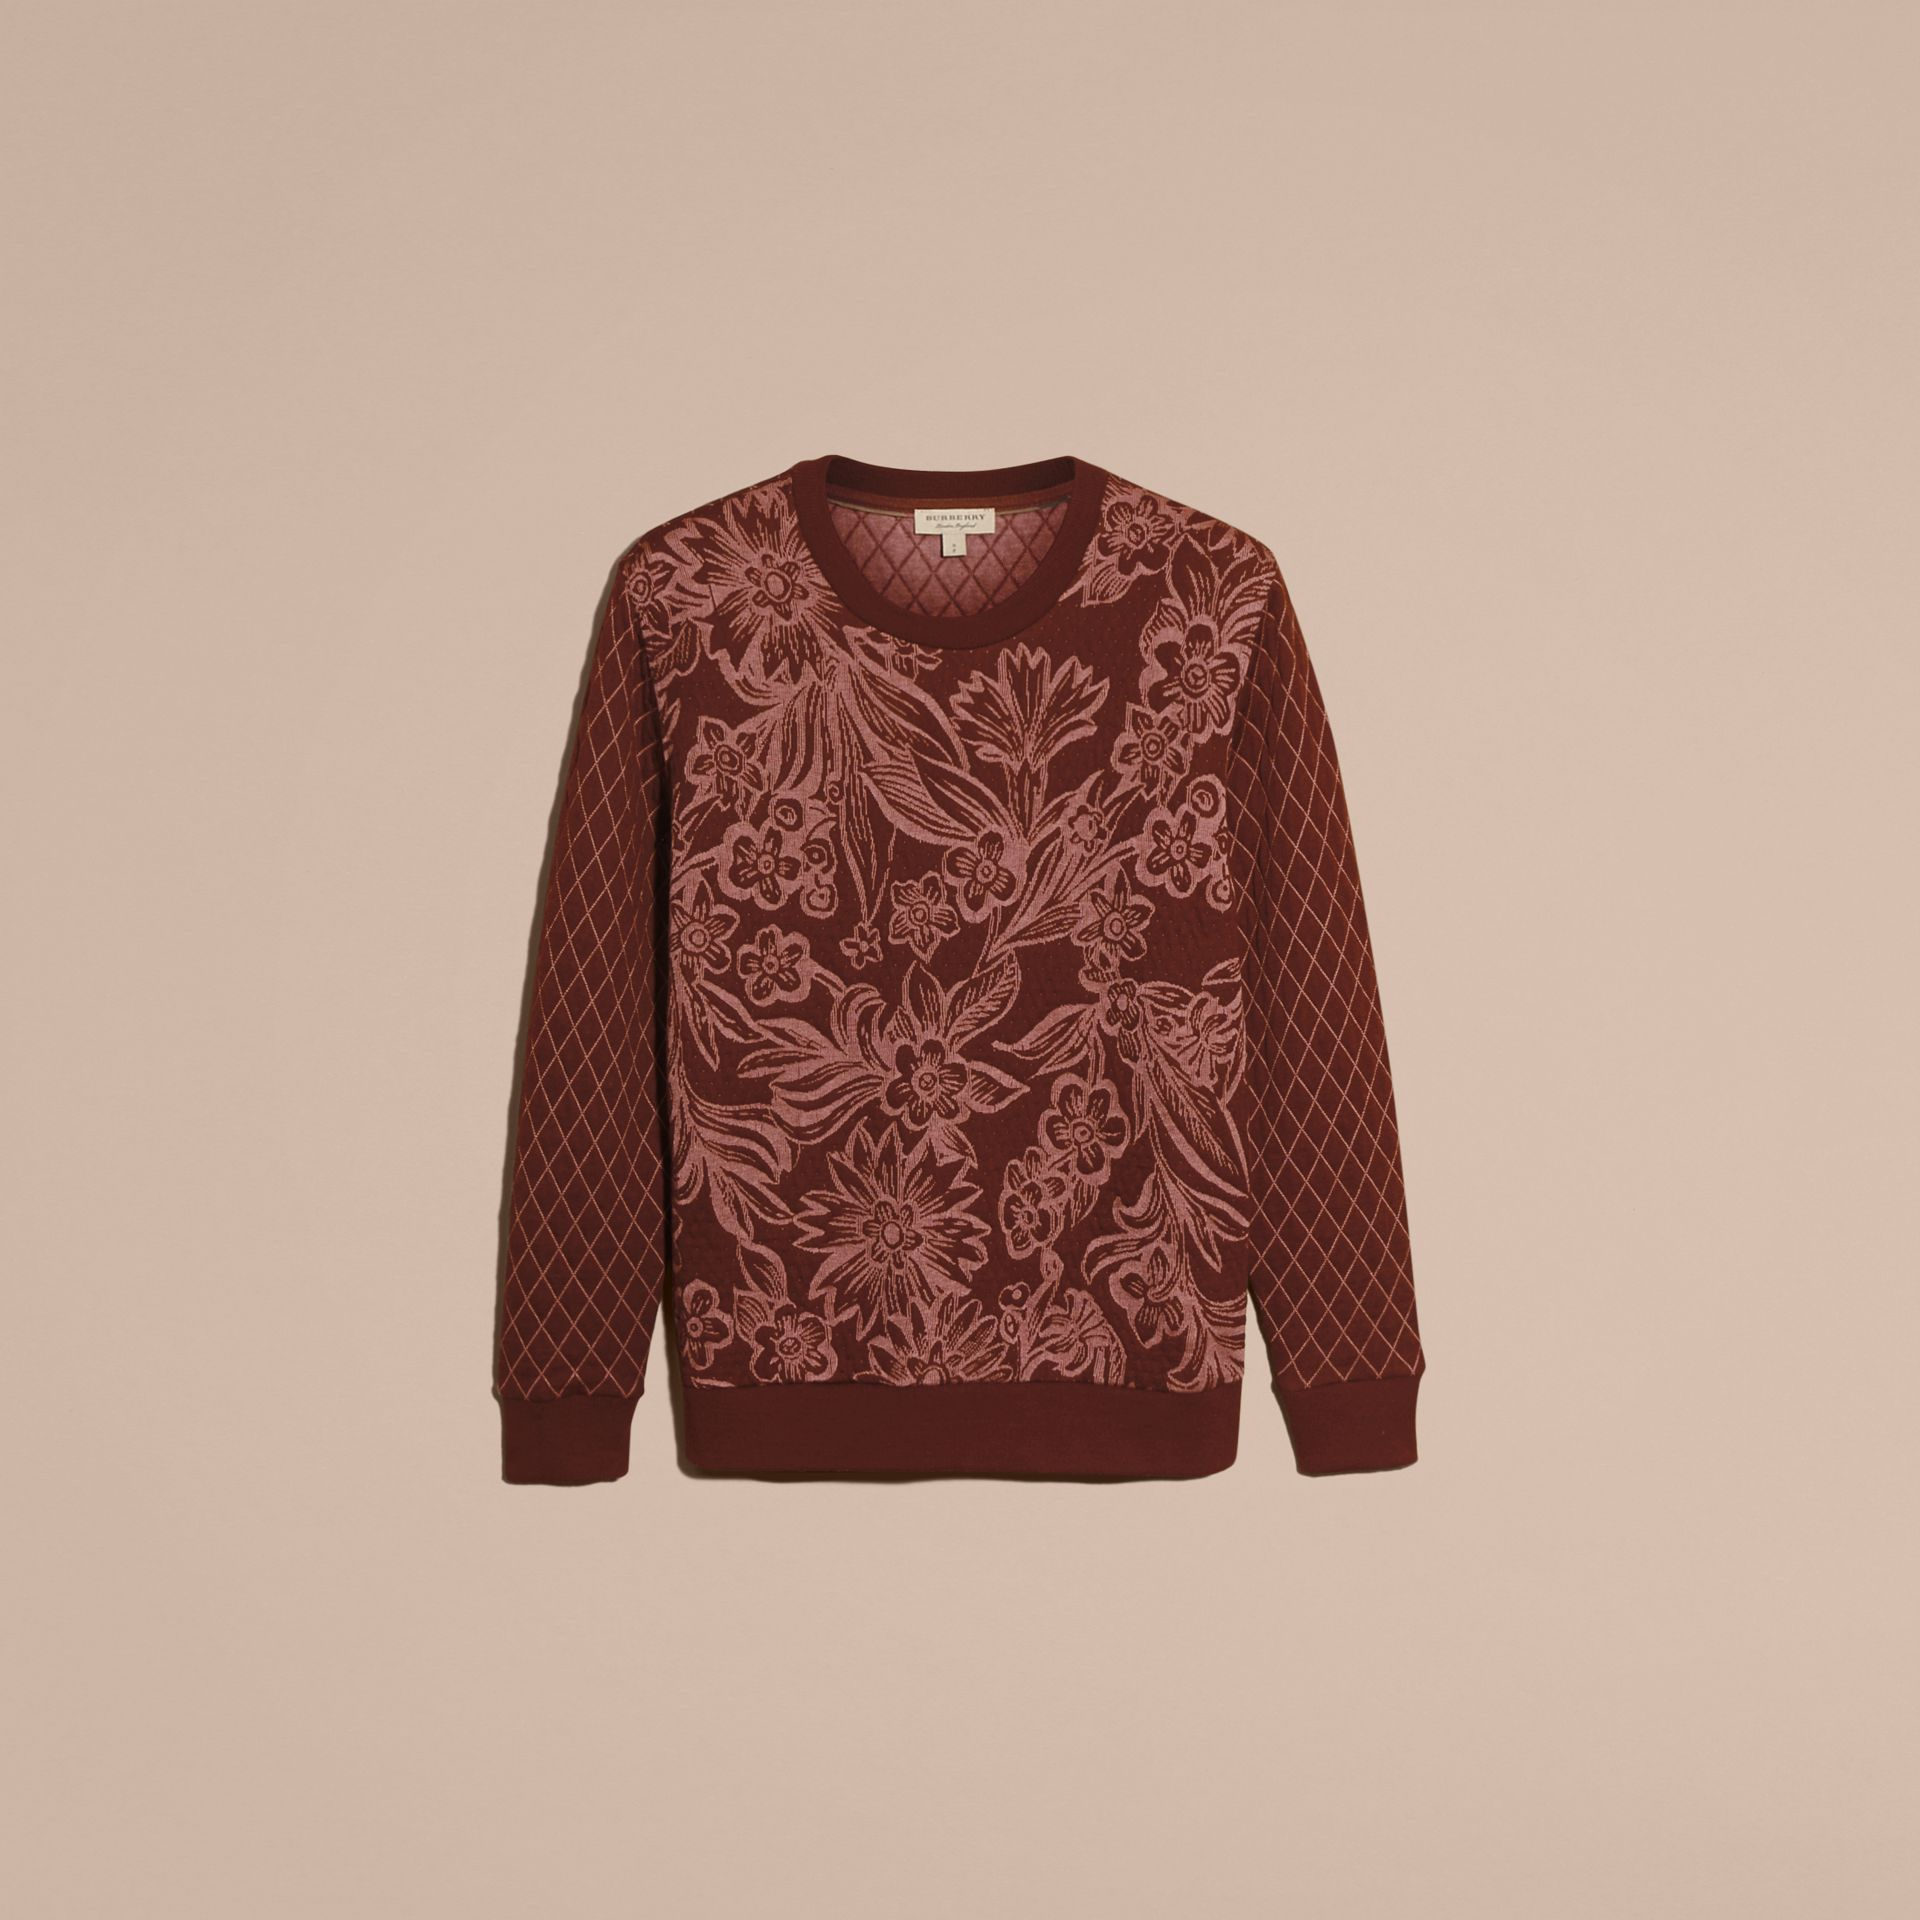 Garnet Floral Jacquard Cotton Wool Blend Sweater - gallery image 4